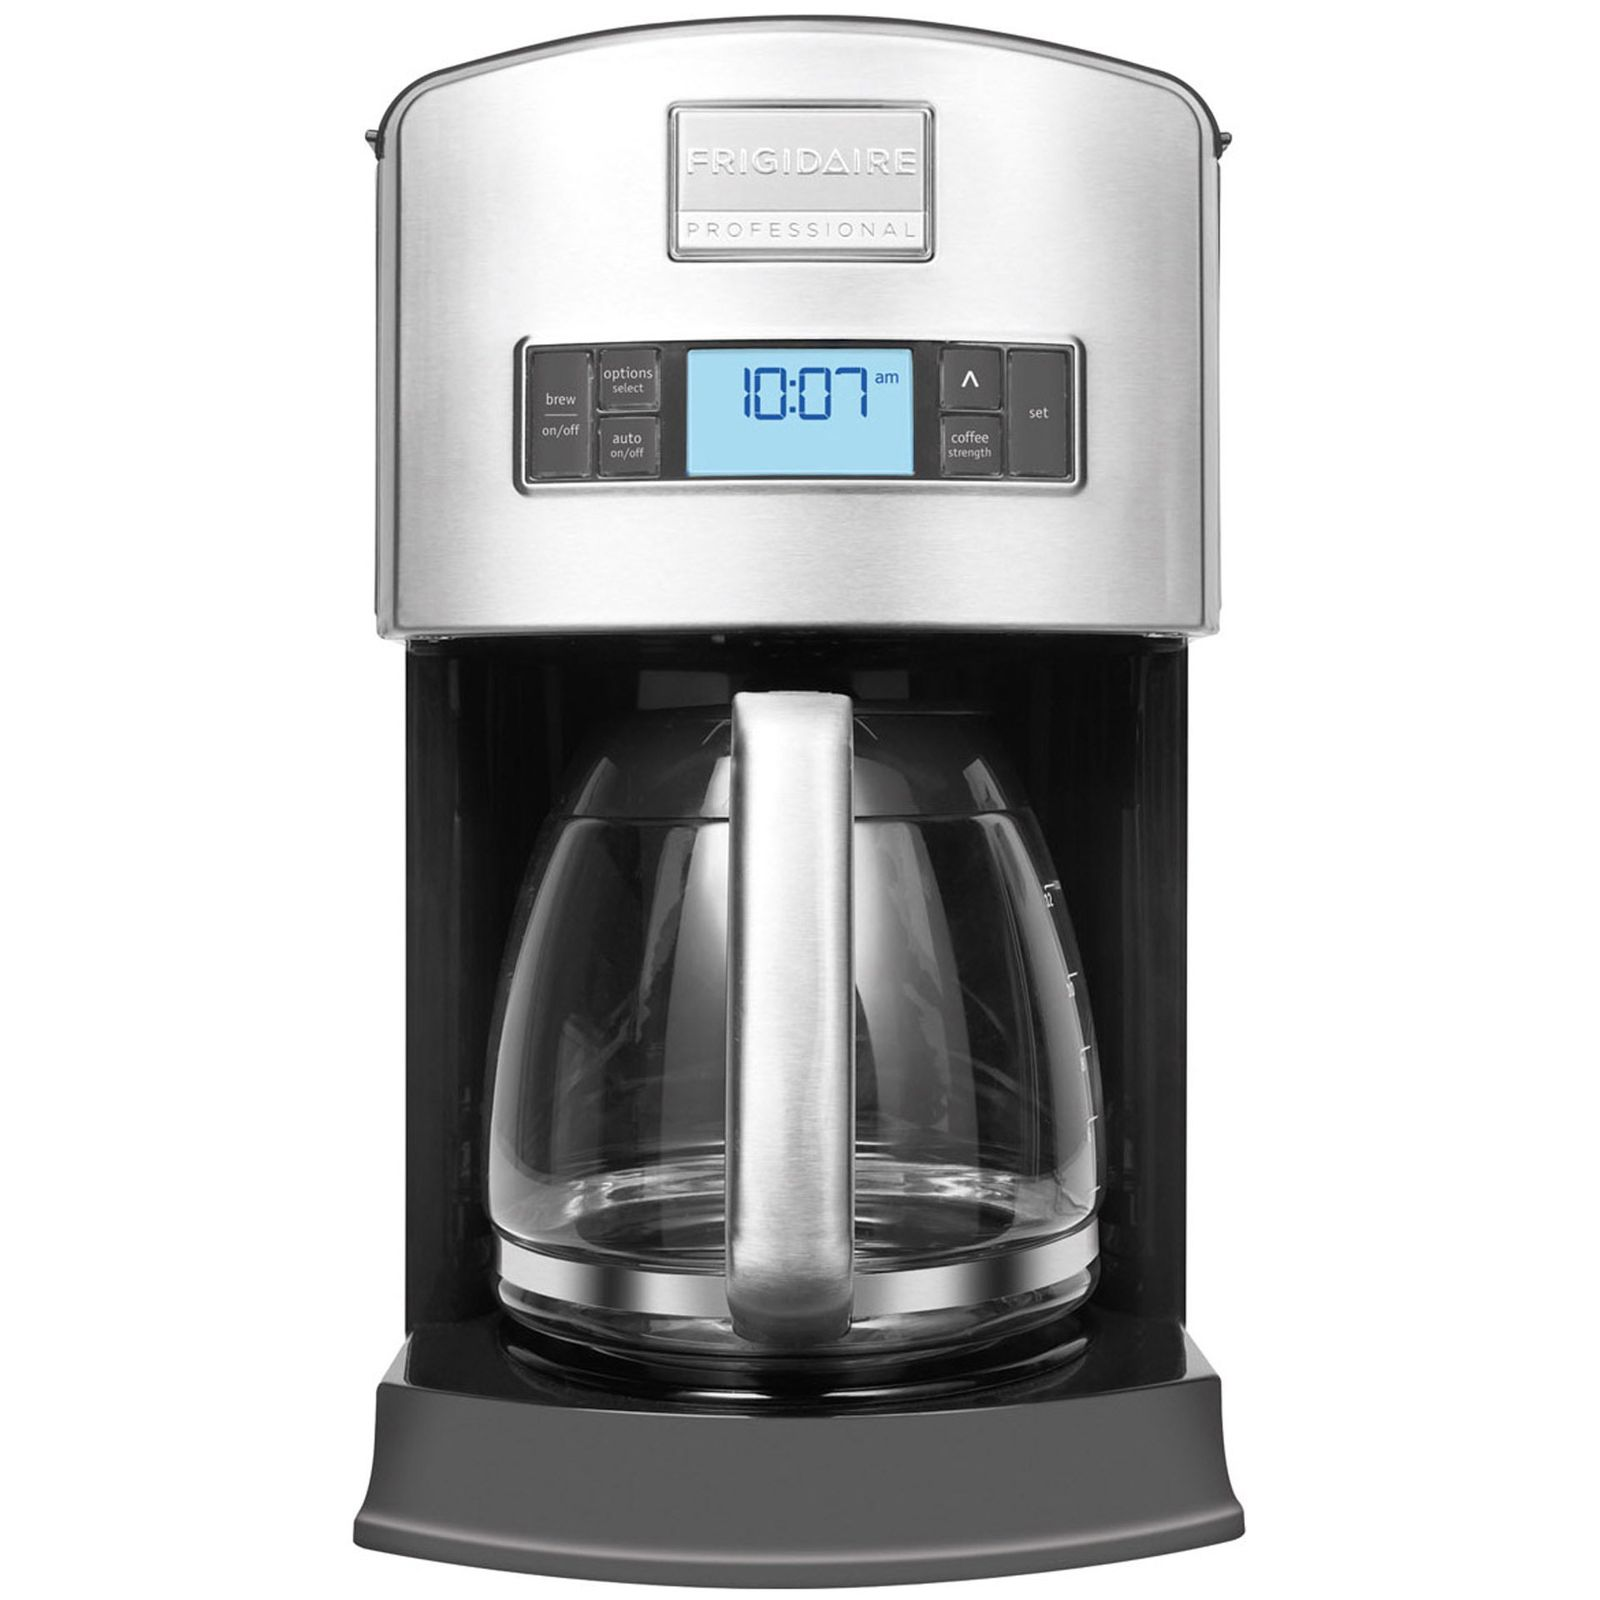 Drip Coffee Maker Meaning : Frigidaire Professional 12-Cup Drip Coffee Maker #FPDC12D7MS Review